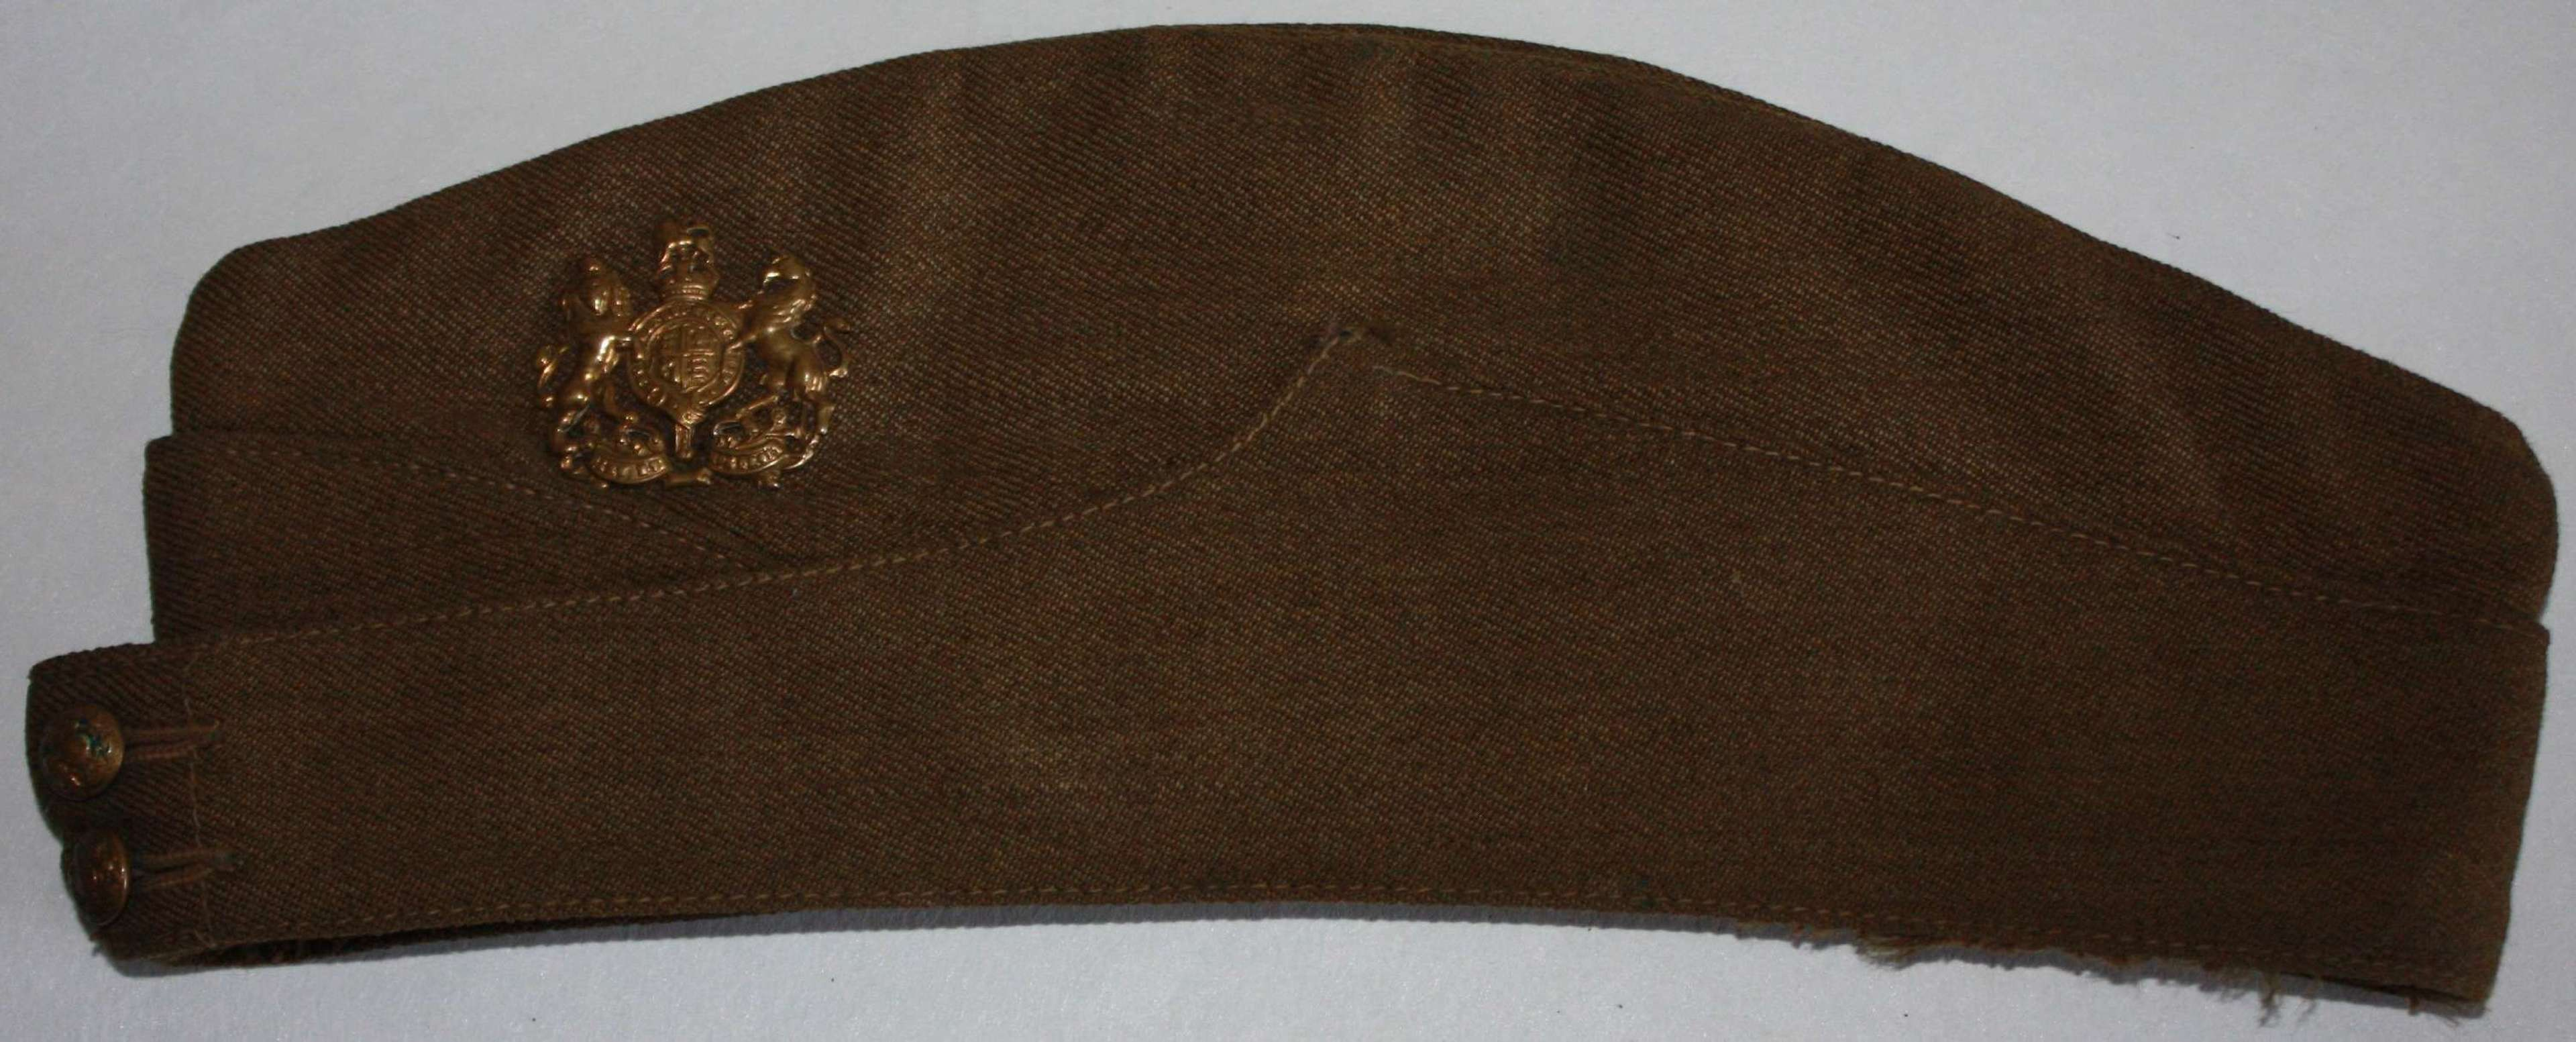 A GOOD WWII BRITISH ISSUE ARMY SIDE CAP NAMED AND BADGED